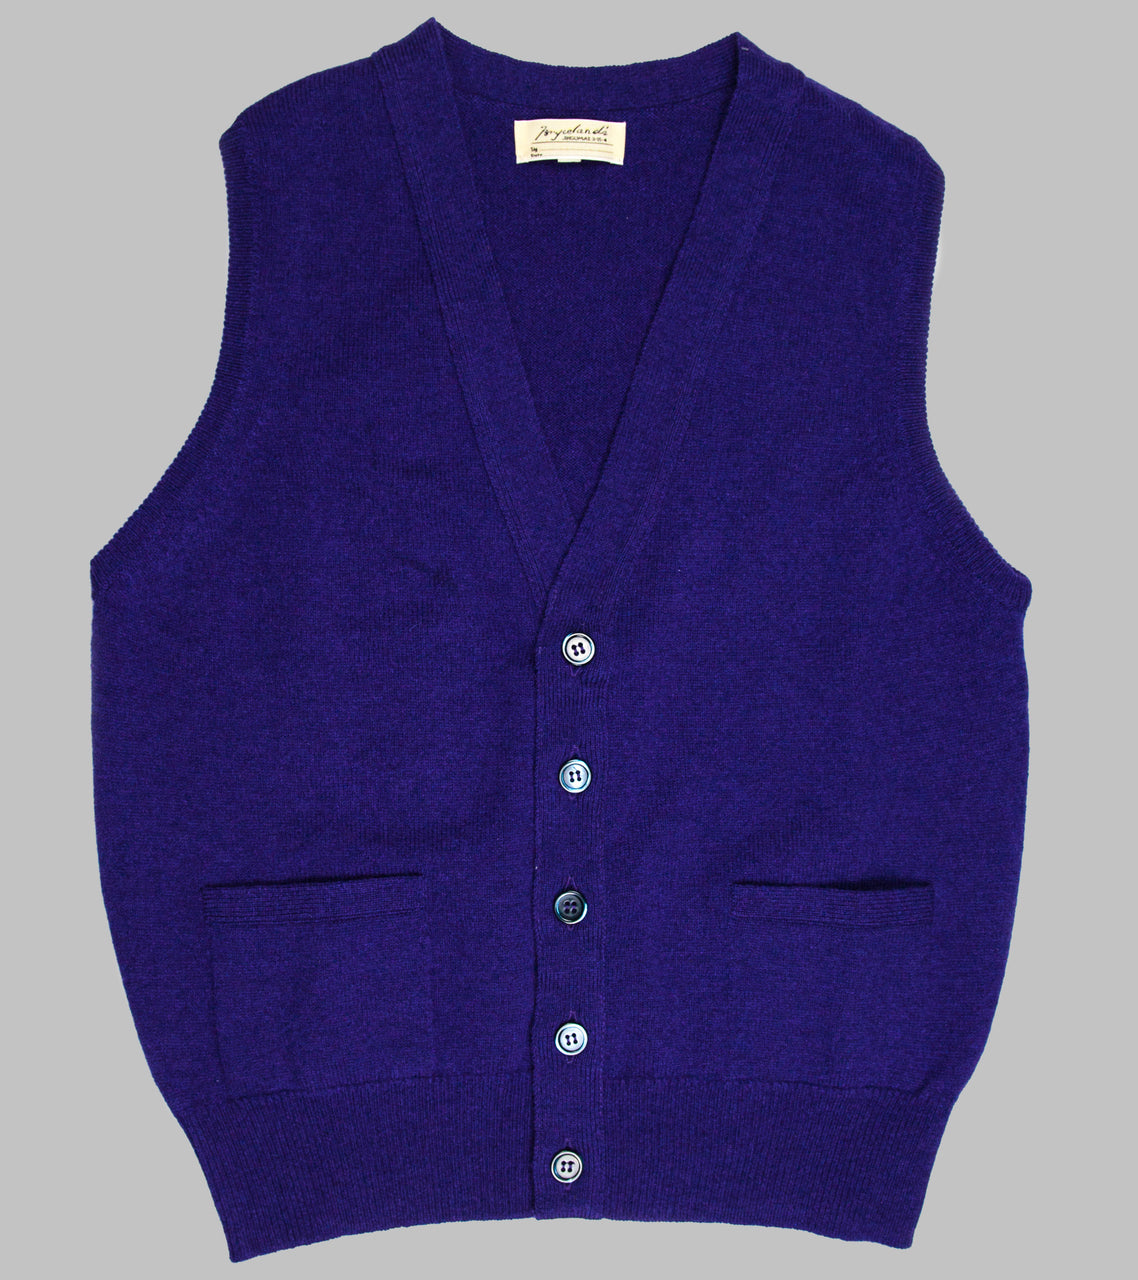 Bryceland's Lambswool Sleeveless Cardigan Purple